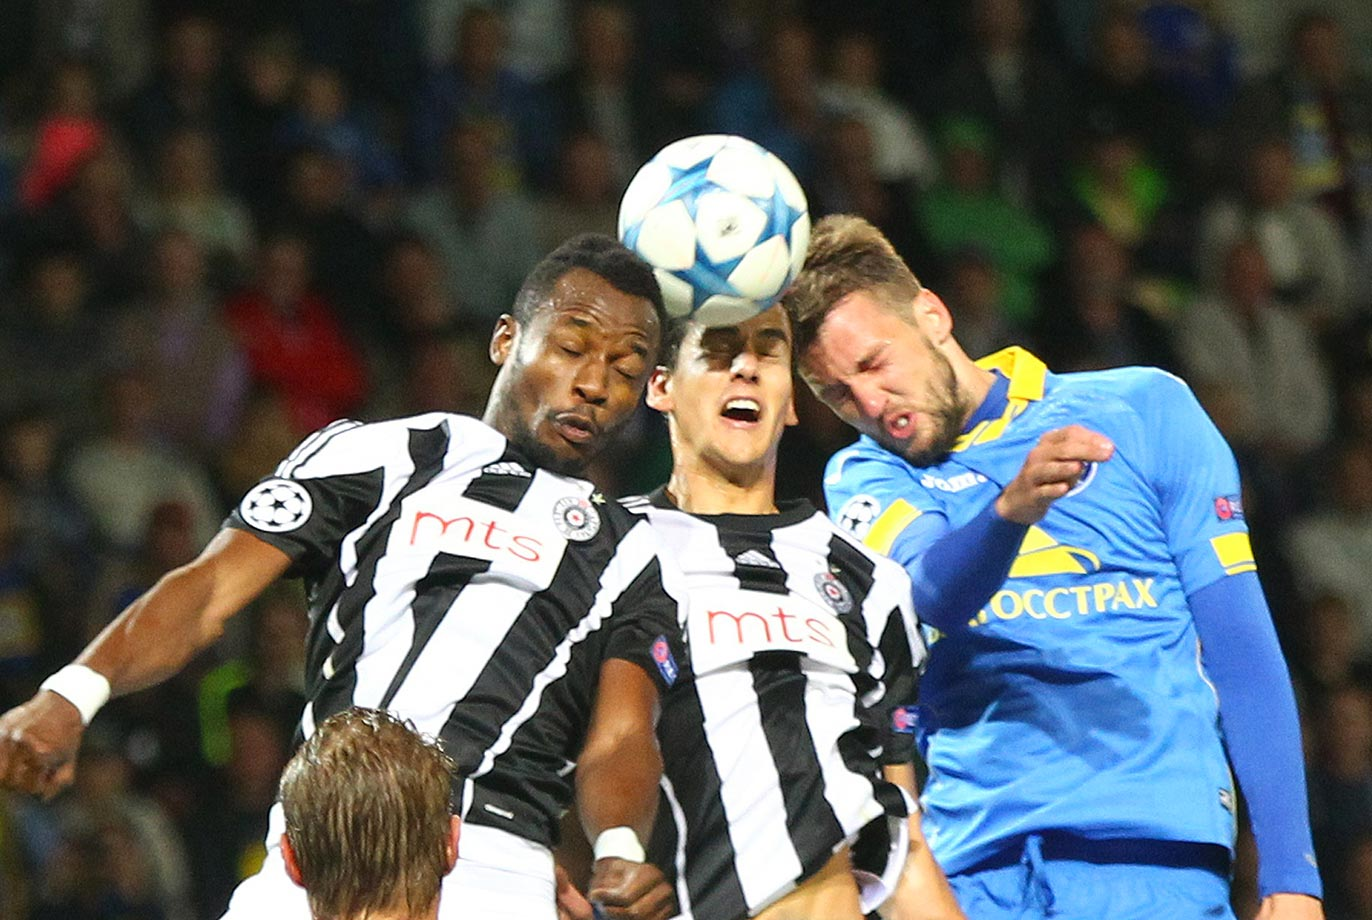 Partizan Belgrade's Abubakar Oumaru, left, and Marko Jevtovic battle Nemanja Milunovic for the ball in Borisov, Belarus.